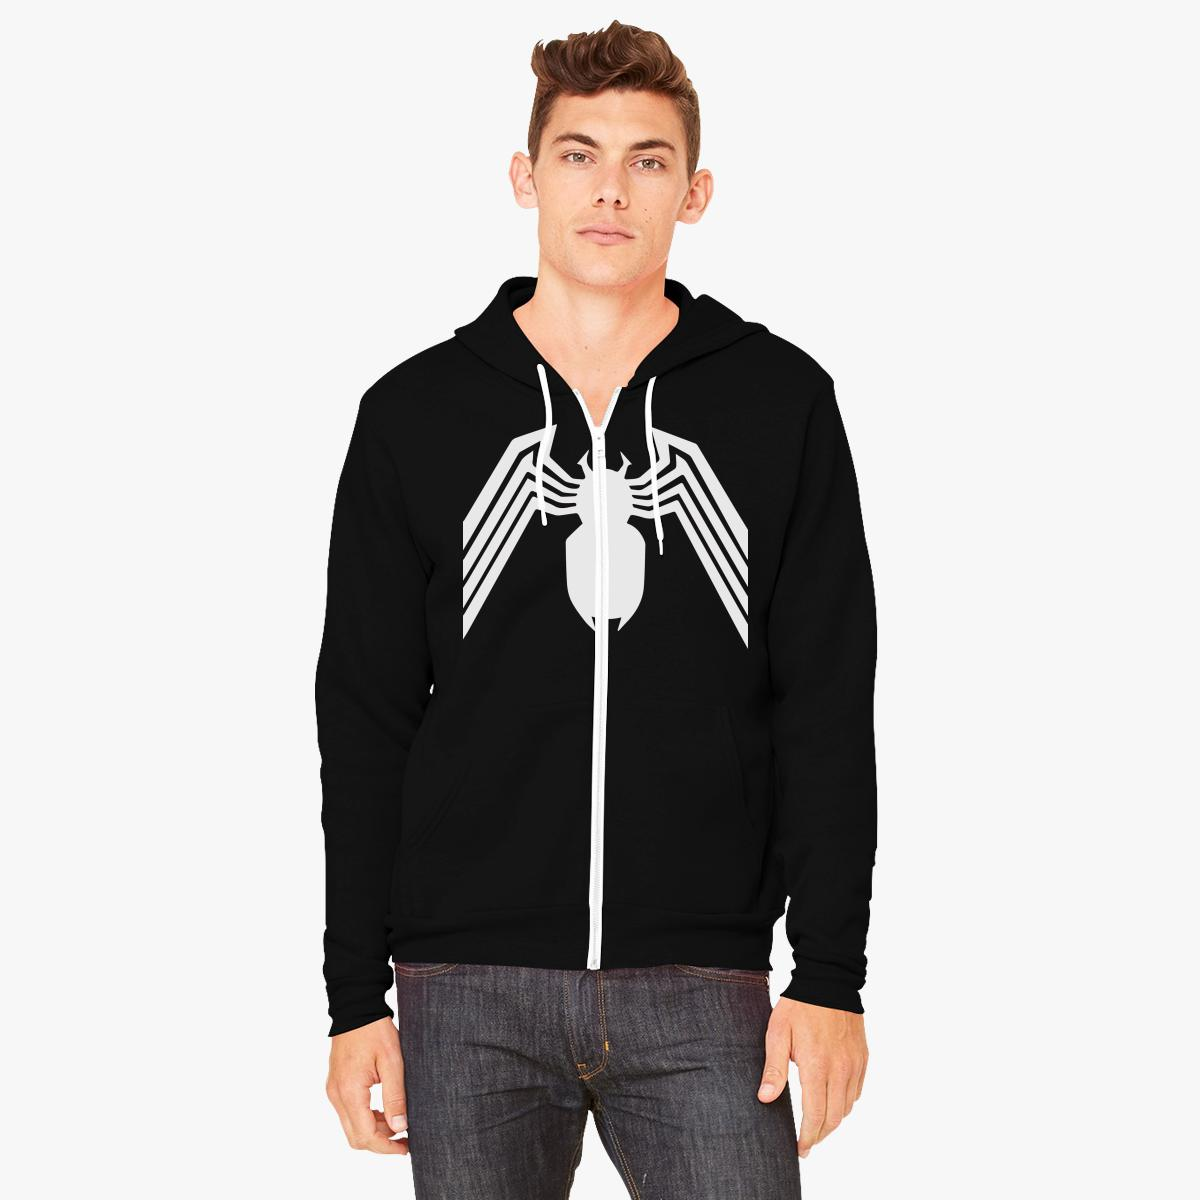 Venom Spider-Man Zip-Up Hoodie